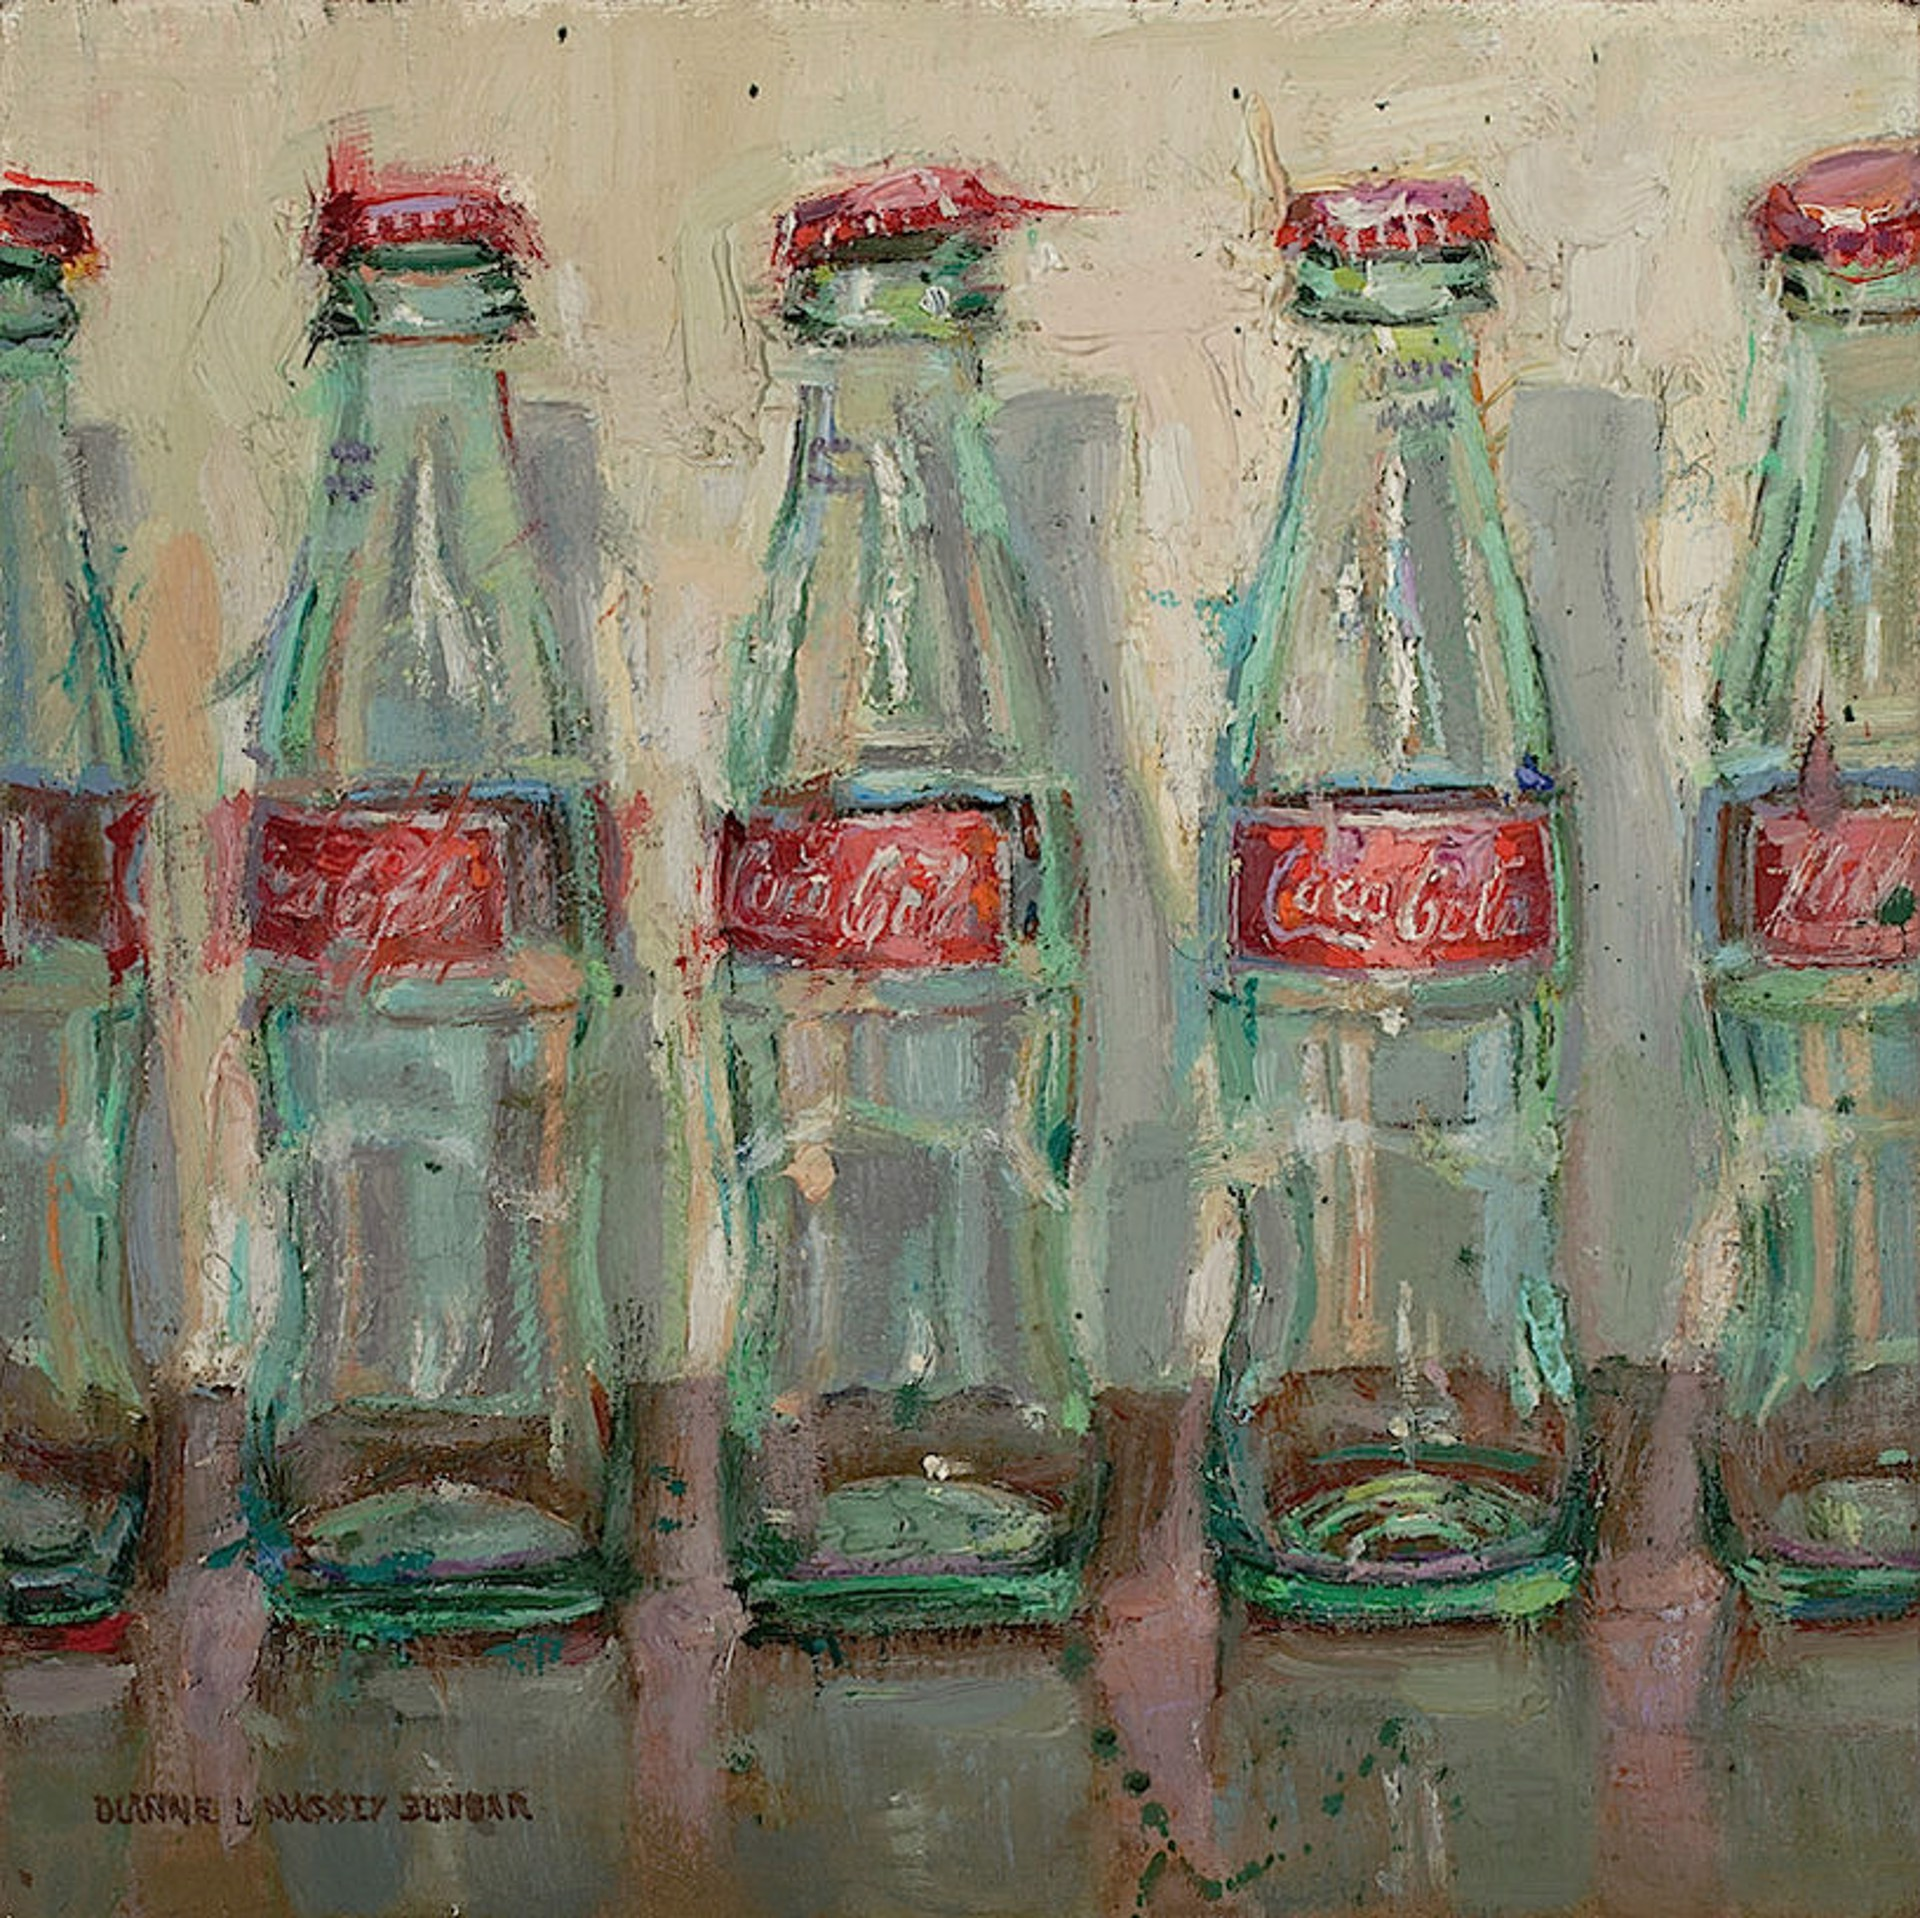 Bottles and Shadows by Dianne L Massey Dunbar